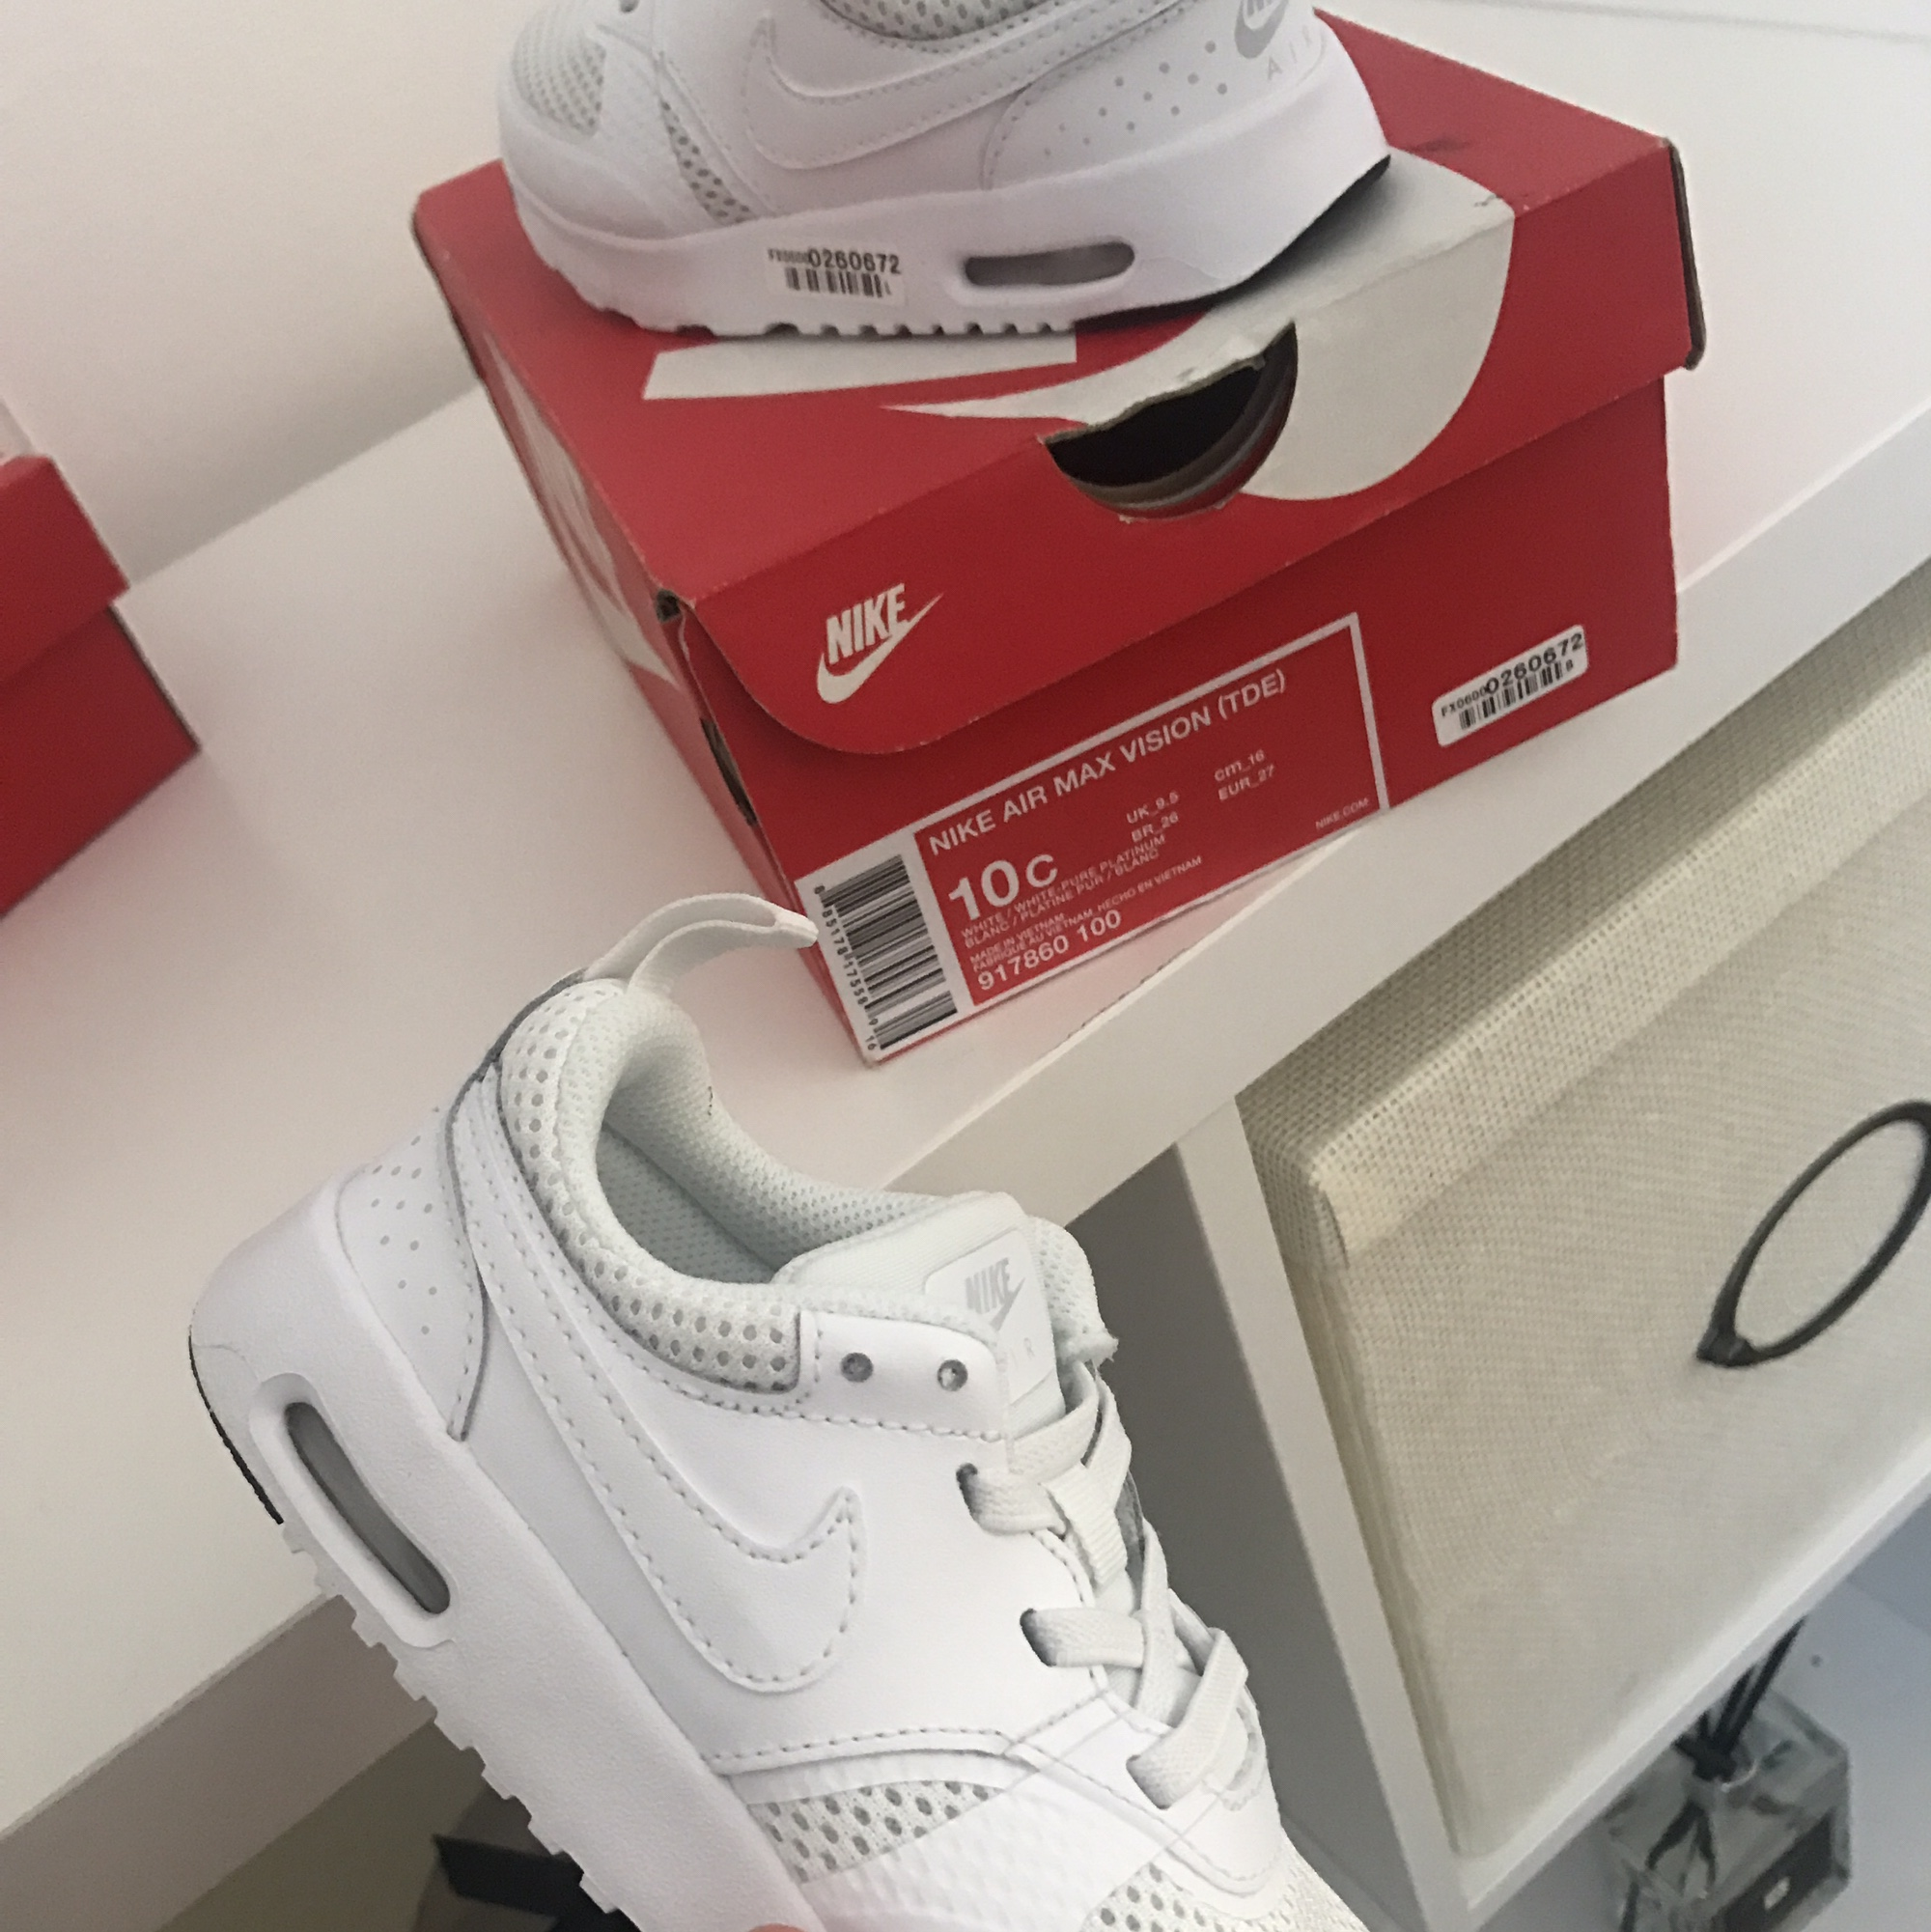 Nike Air Max Vision pearl white infant trainers Depop